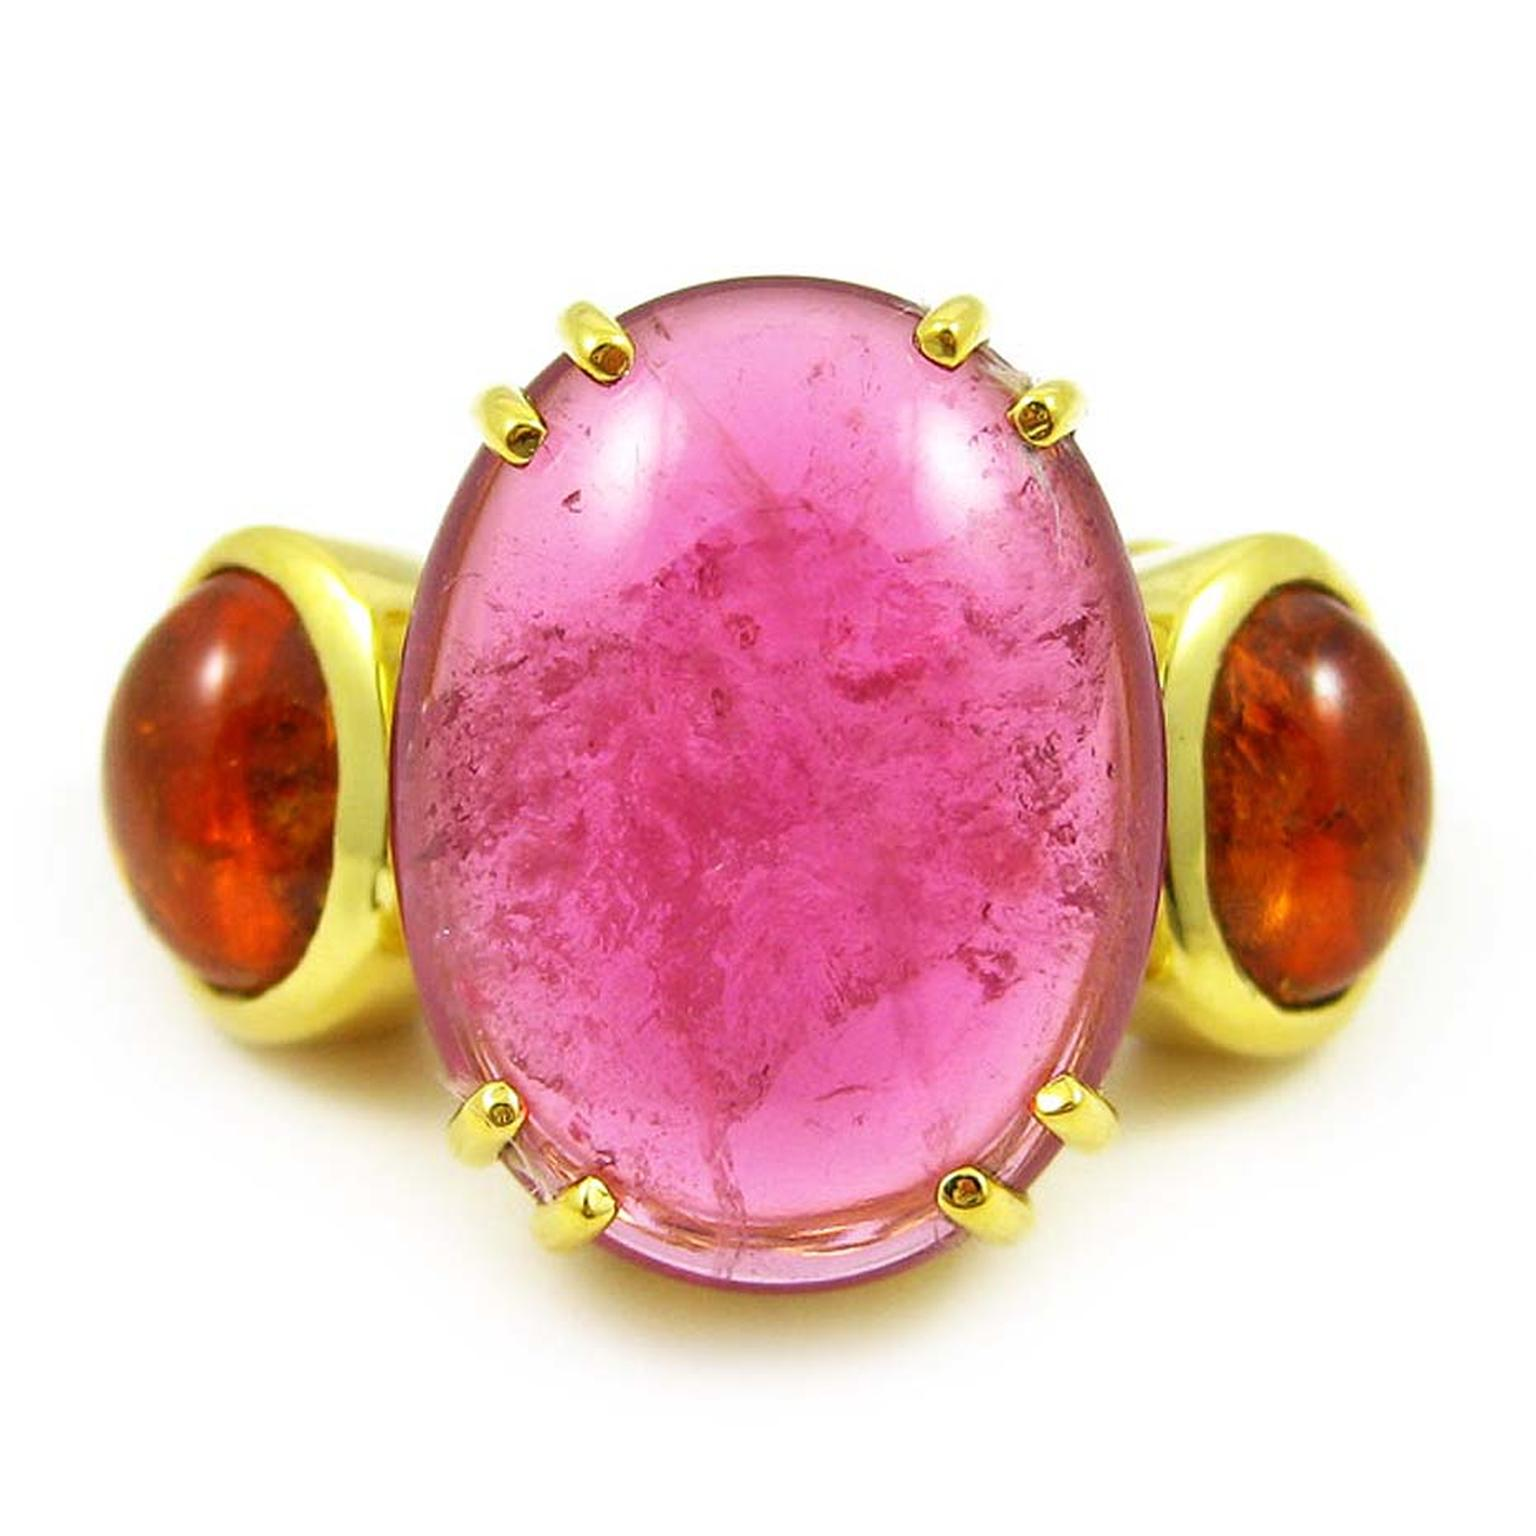 From the Chains of Love collection, the K Brunini Jewels rubellite and mandarin garnet Twig ring in yellow gold is set with a large pink rubellite with a mandarin garnet cabochon on either side. $14,800.